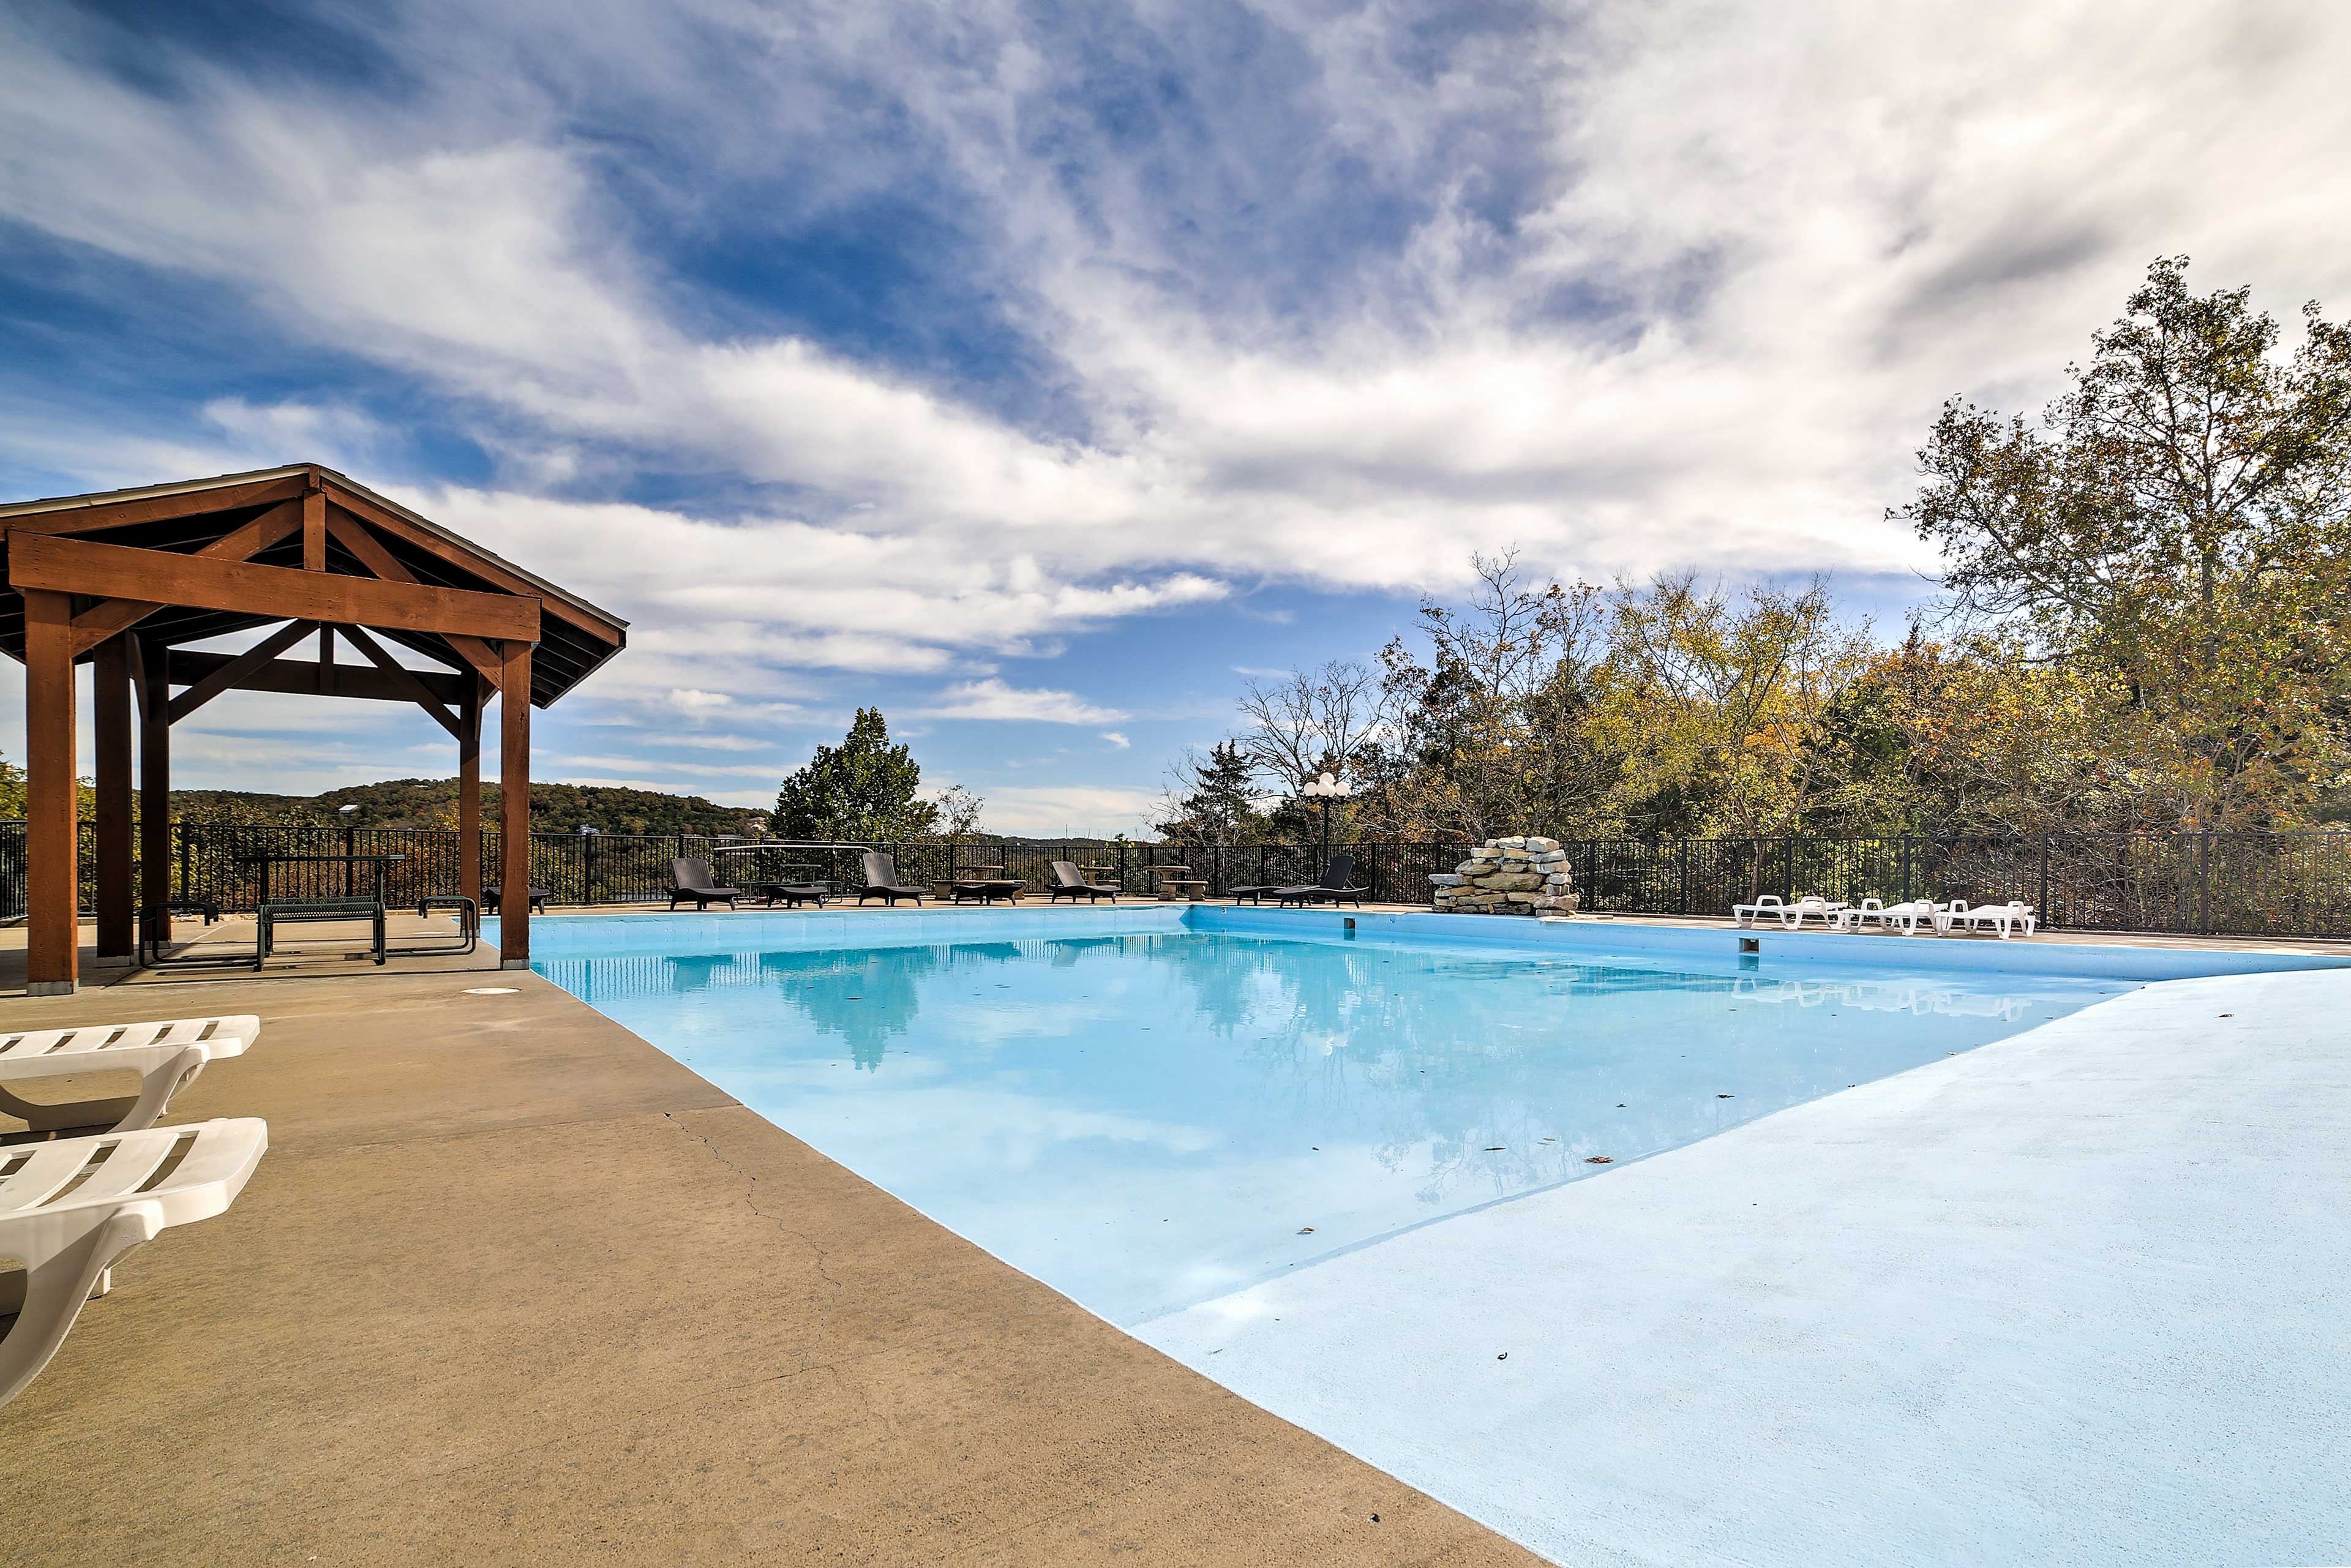 Just steps from your front door is the shared pool for swimming and sunbathing!